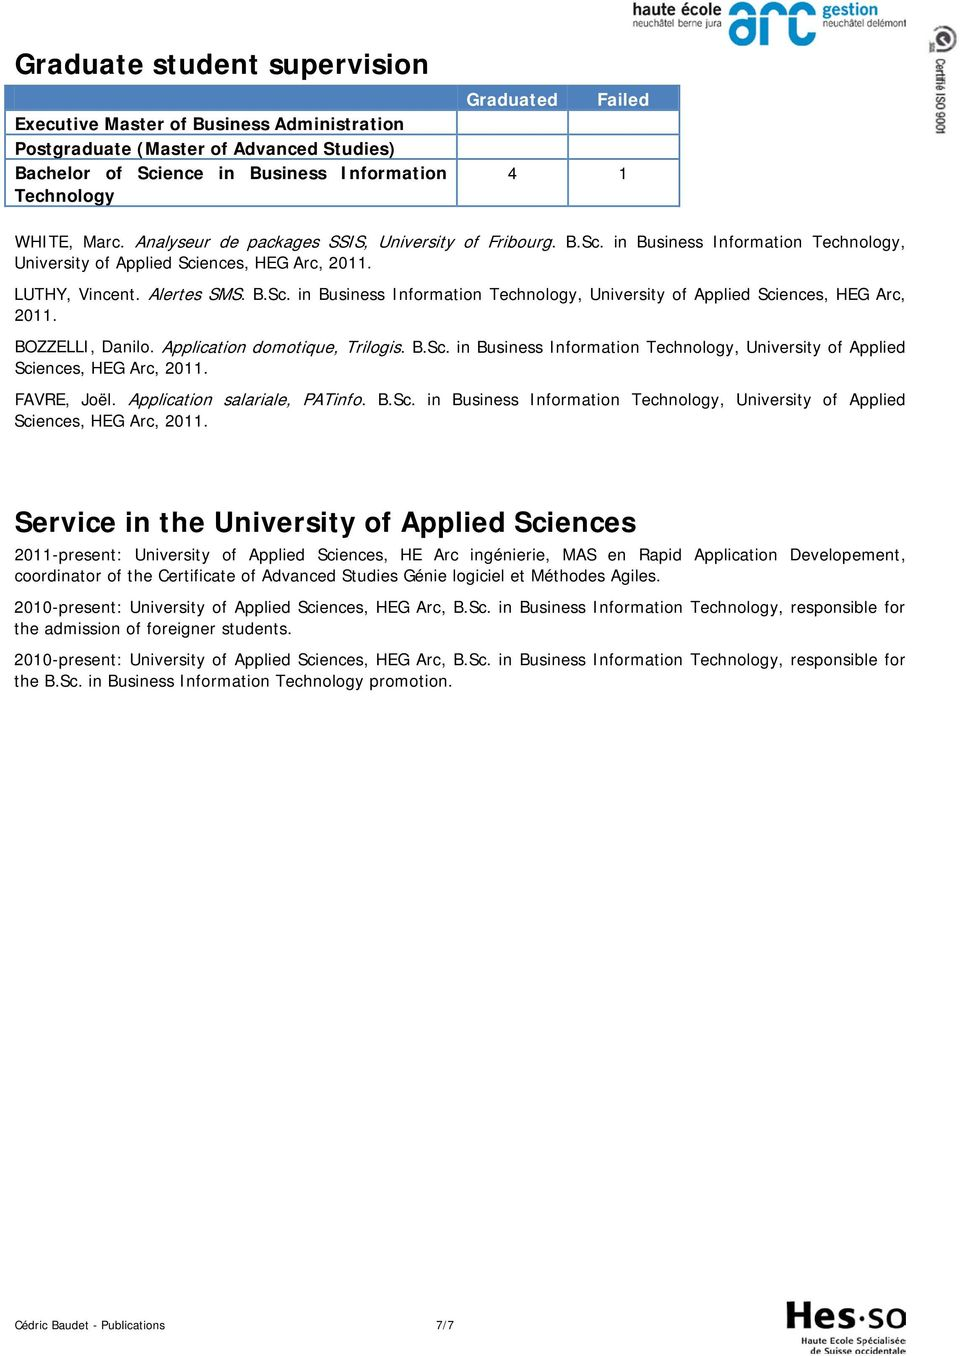 Application domotique, Trilogis. B.Sc. in Business Information Technology, University of Applied Sciences, HEG Arc, 2011.